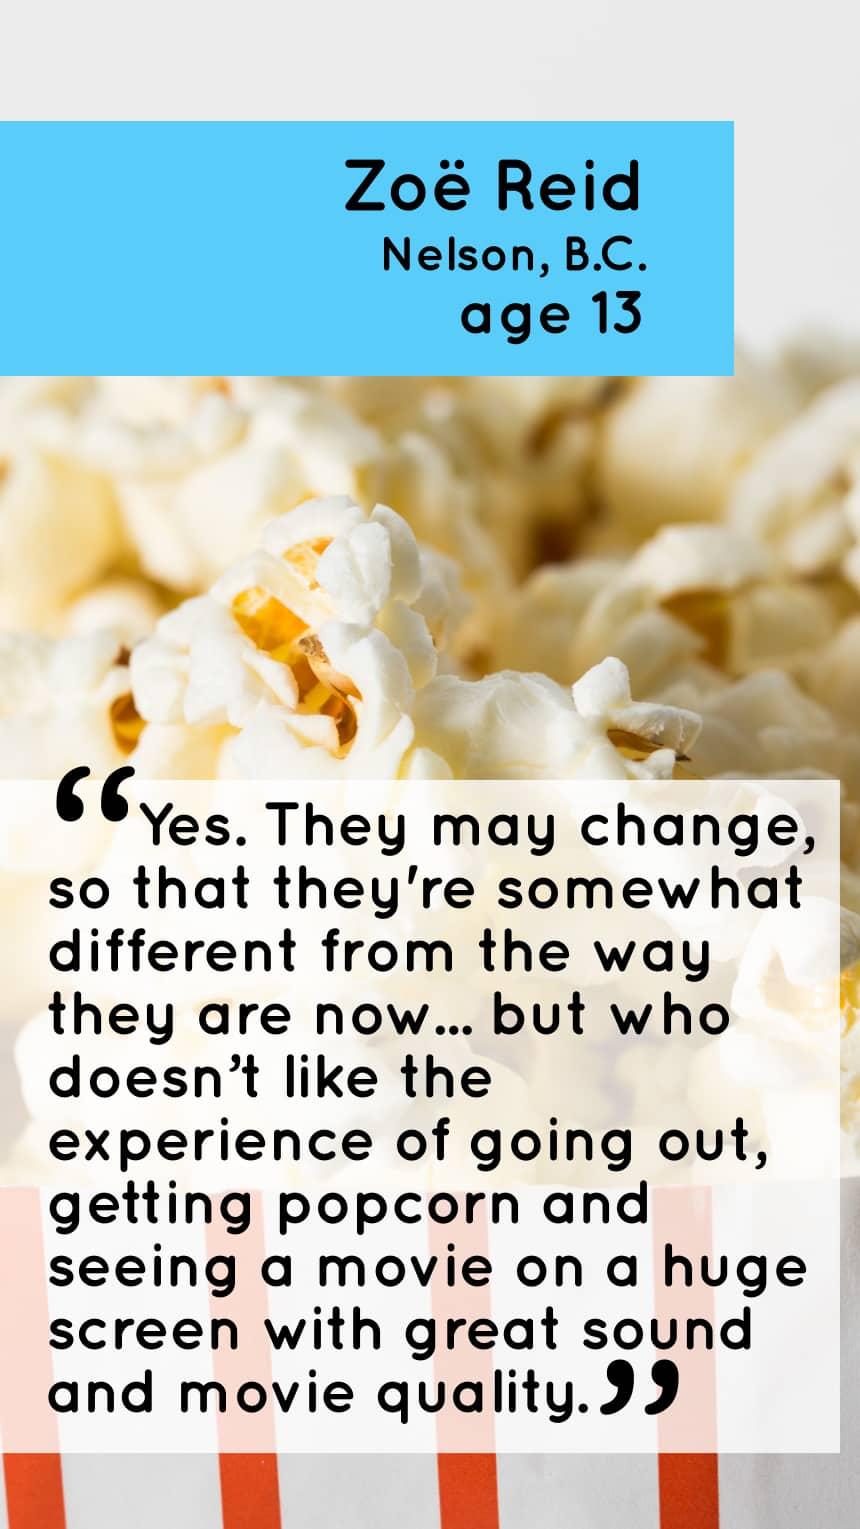 Zoë Reid Nelson, B.C. 13 Yes.They may change, so that they're somewhat different from the way they are now ... but who doesn't like the experience of going out, getting popcorn and seeing a movie on a huge screen with great sound and movie quality?